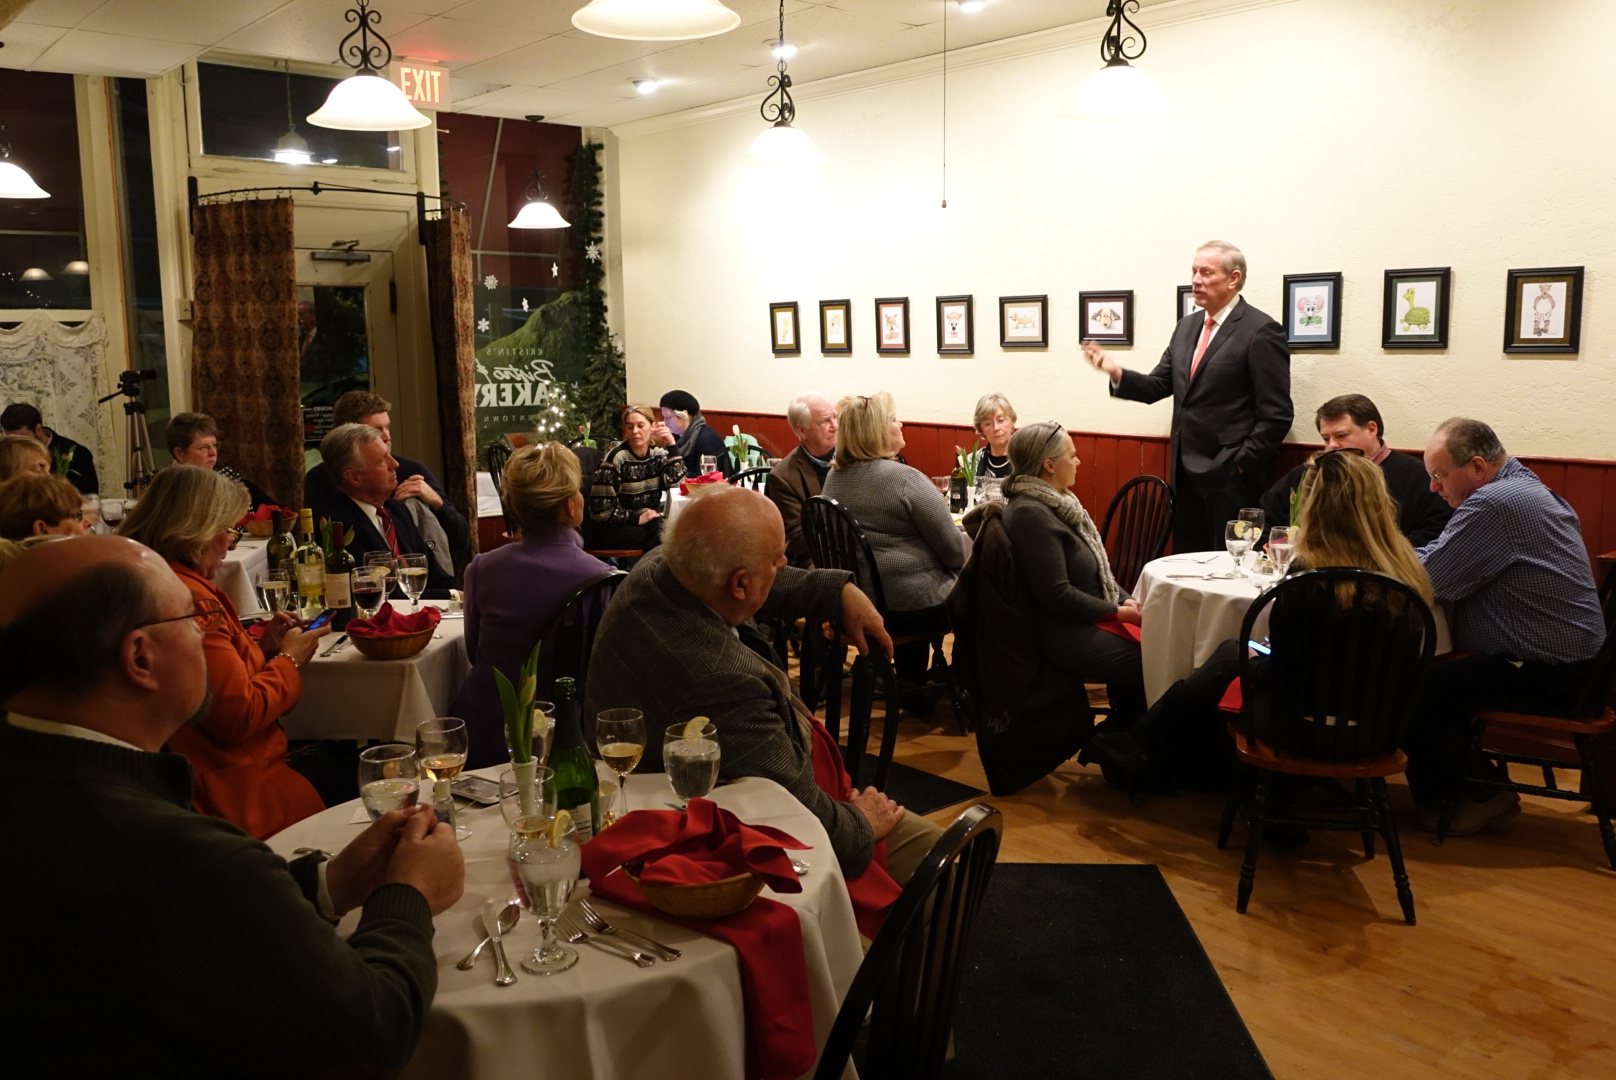 George Pataki speaks at a dinner hosted by the Chesire County Republican Committee in Keene, NH.  2/3/15